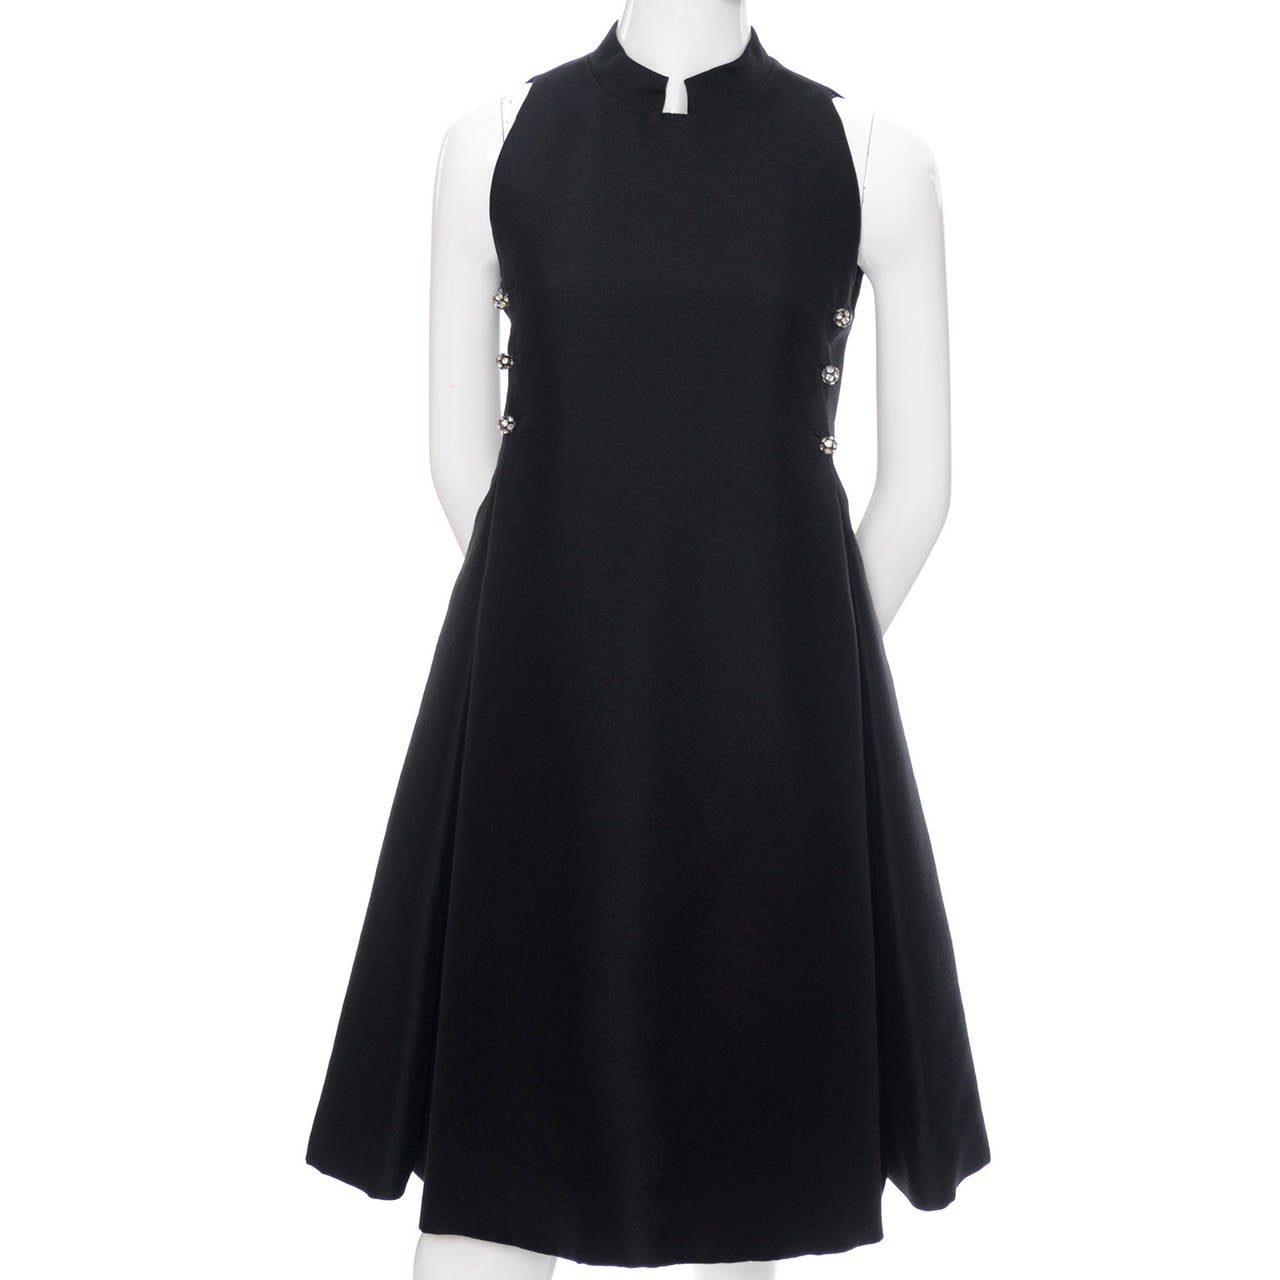 Geoffrey Beene minimalist vintage dresses are some of my very favorites and this one is wonderful.  This black sleeveless midi dress has beautiful rhinestone buttons, a cut out mandarin style collar, and double pleated skirt.  This baby doll empire